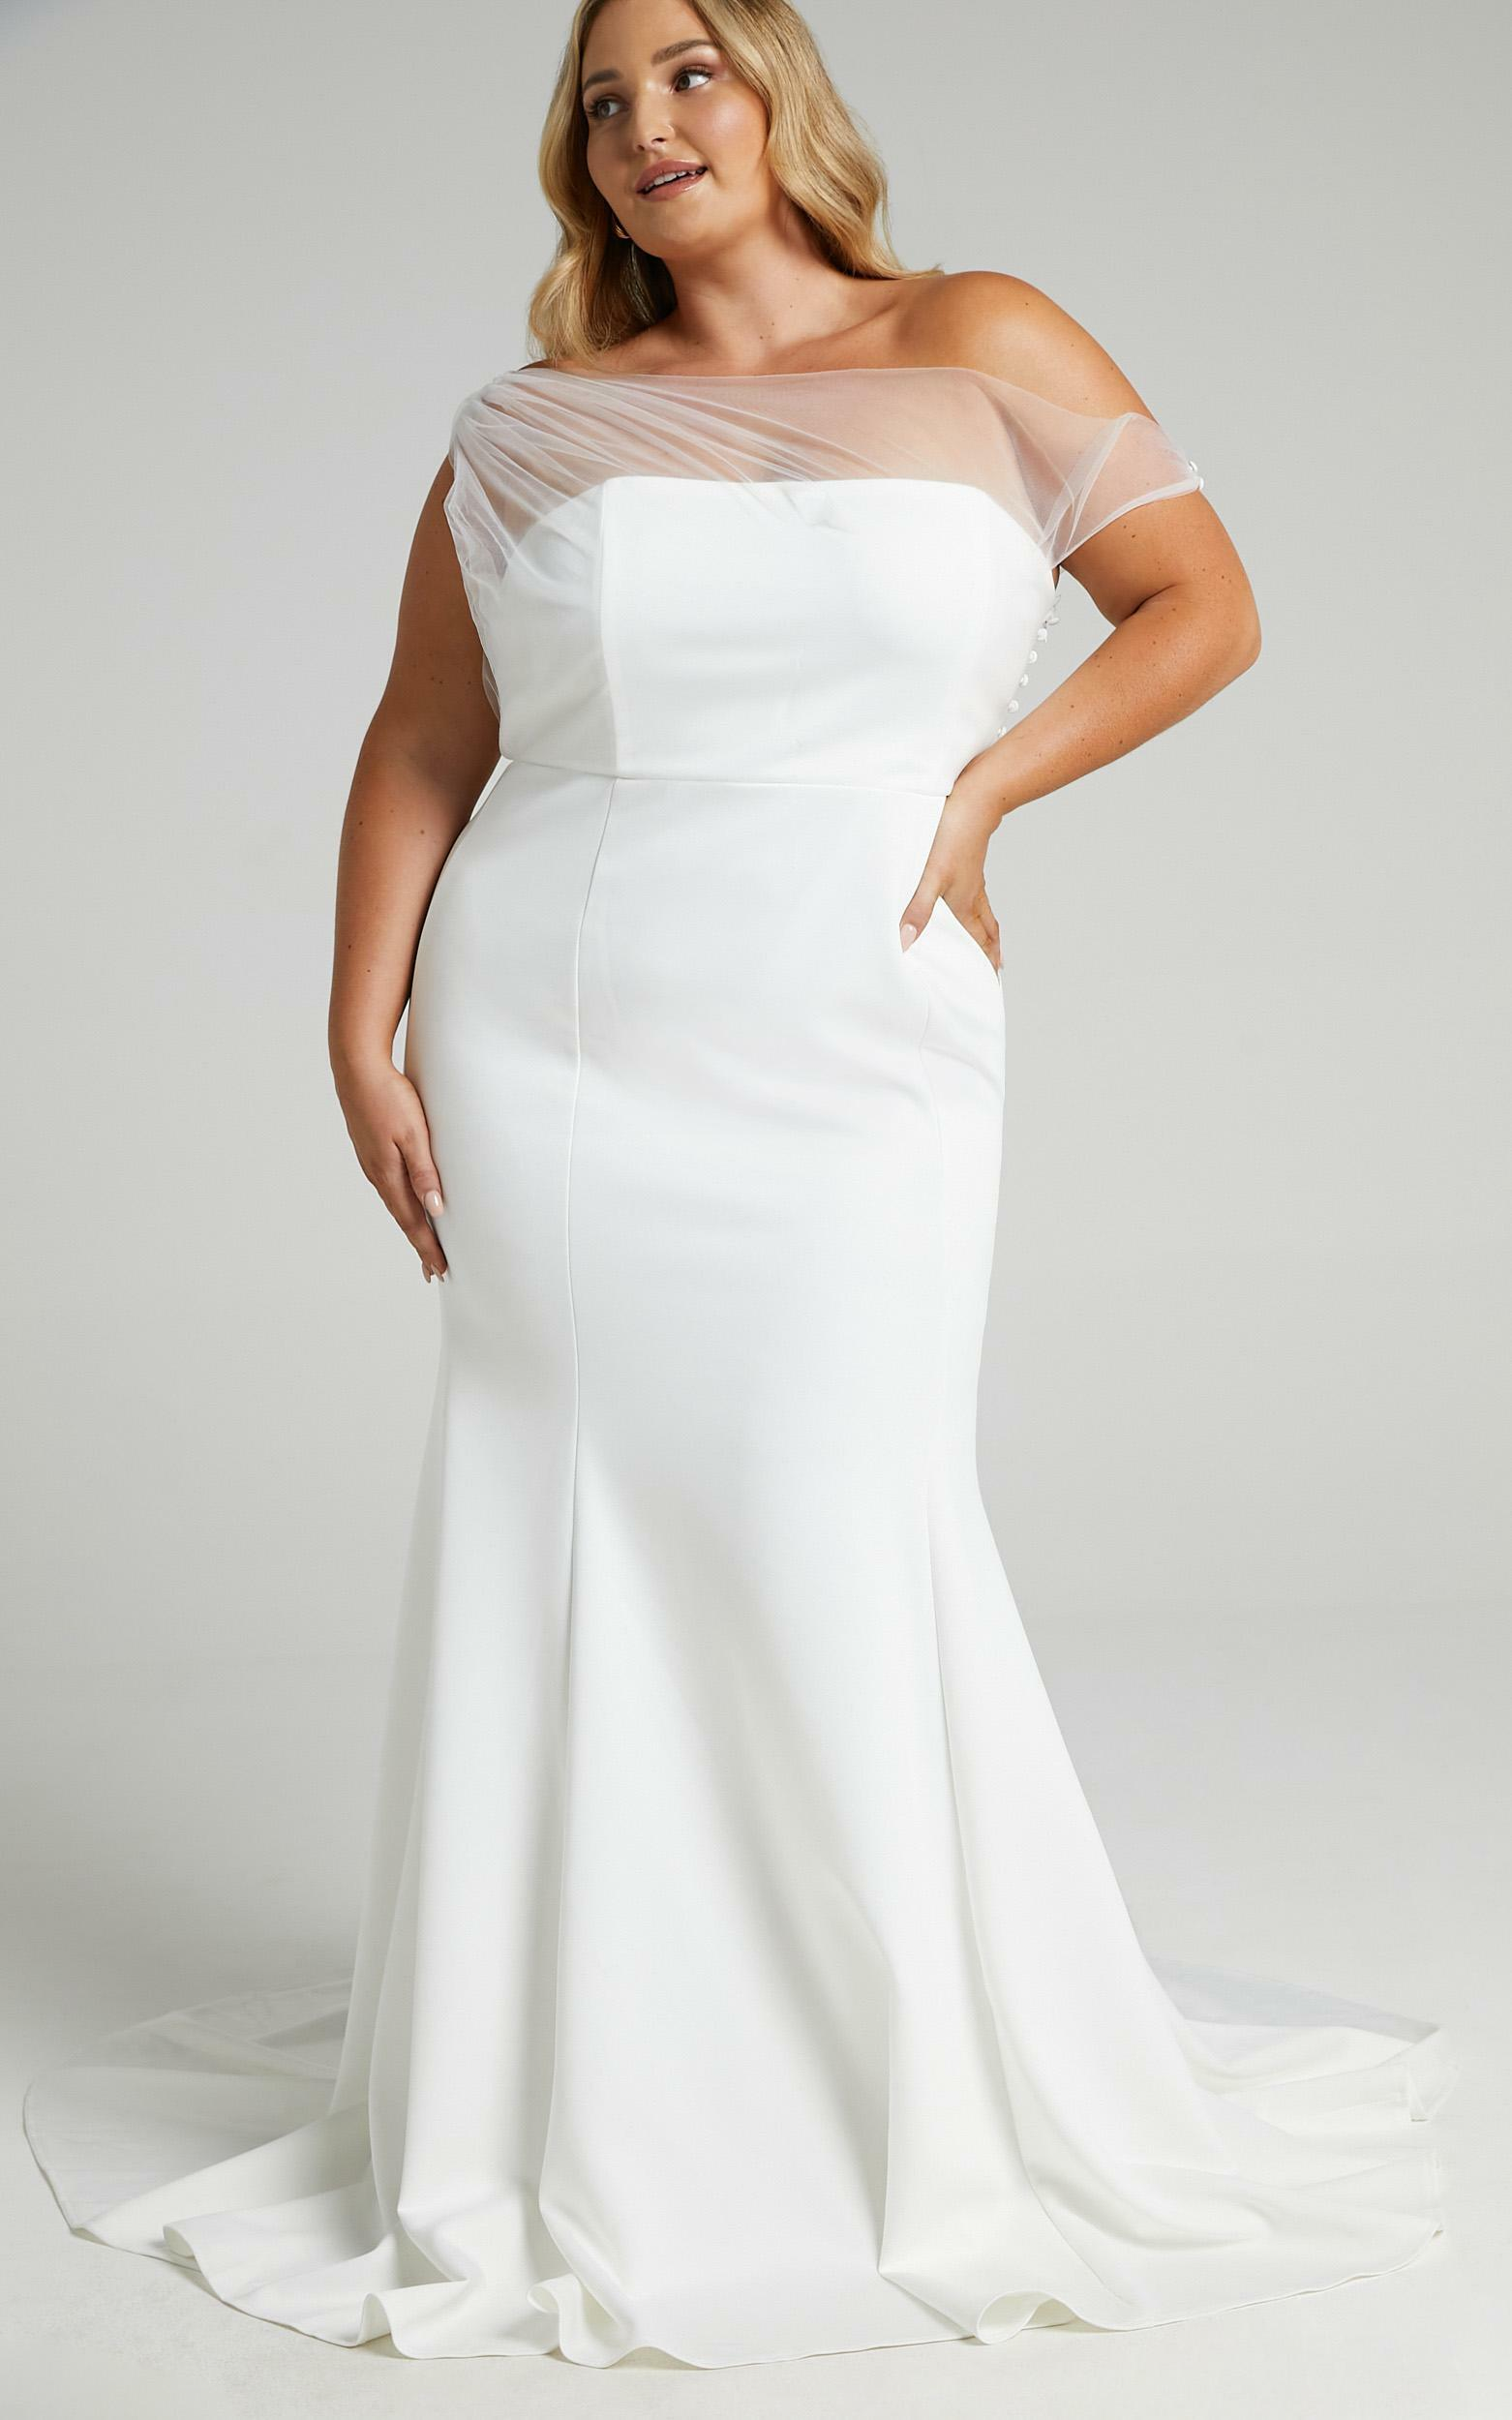 Put A Ring On It Gown in White - 04, WHT1, hi-res image number null